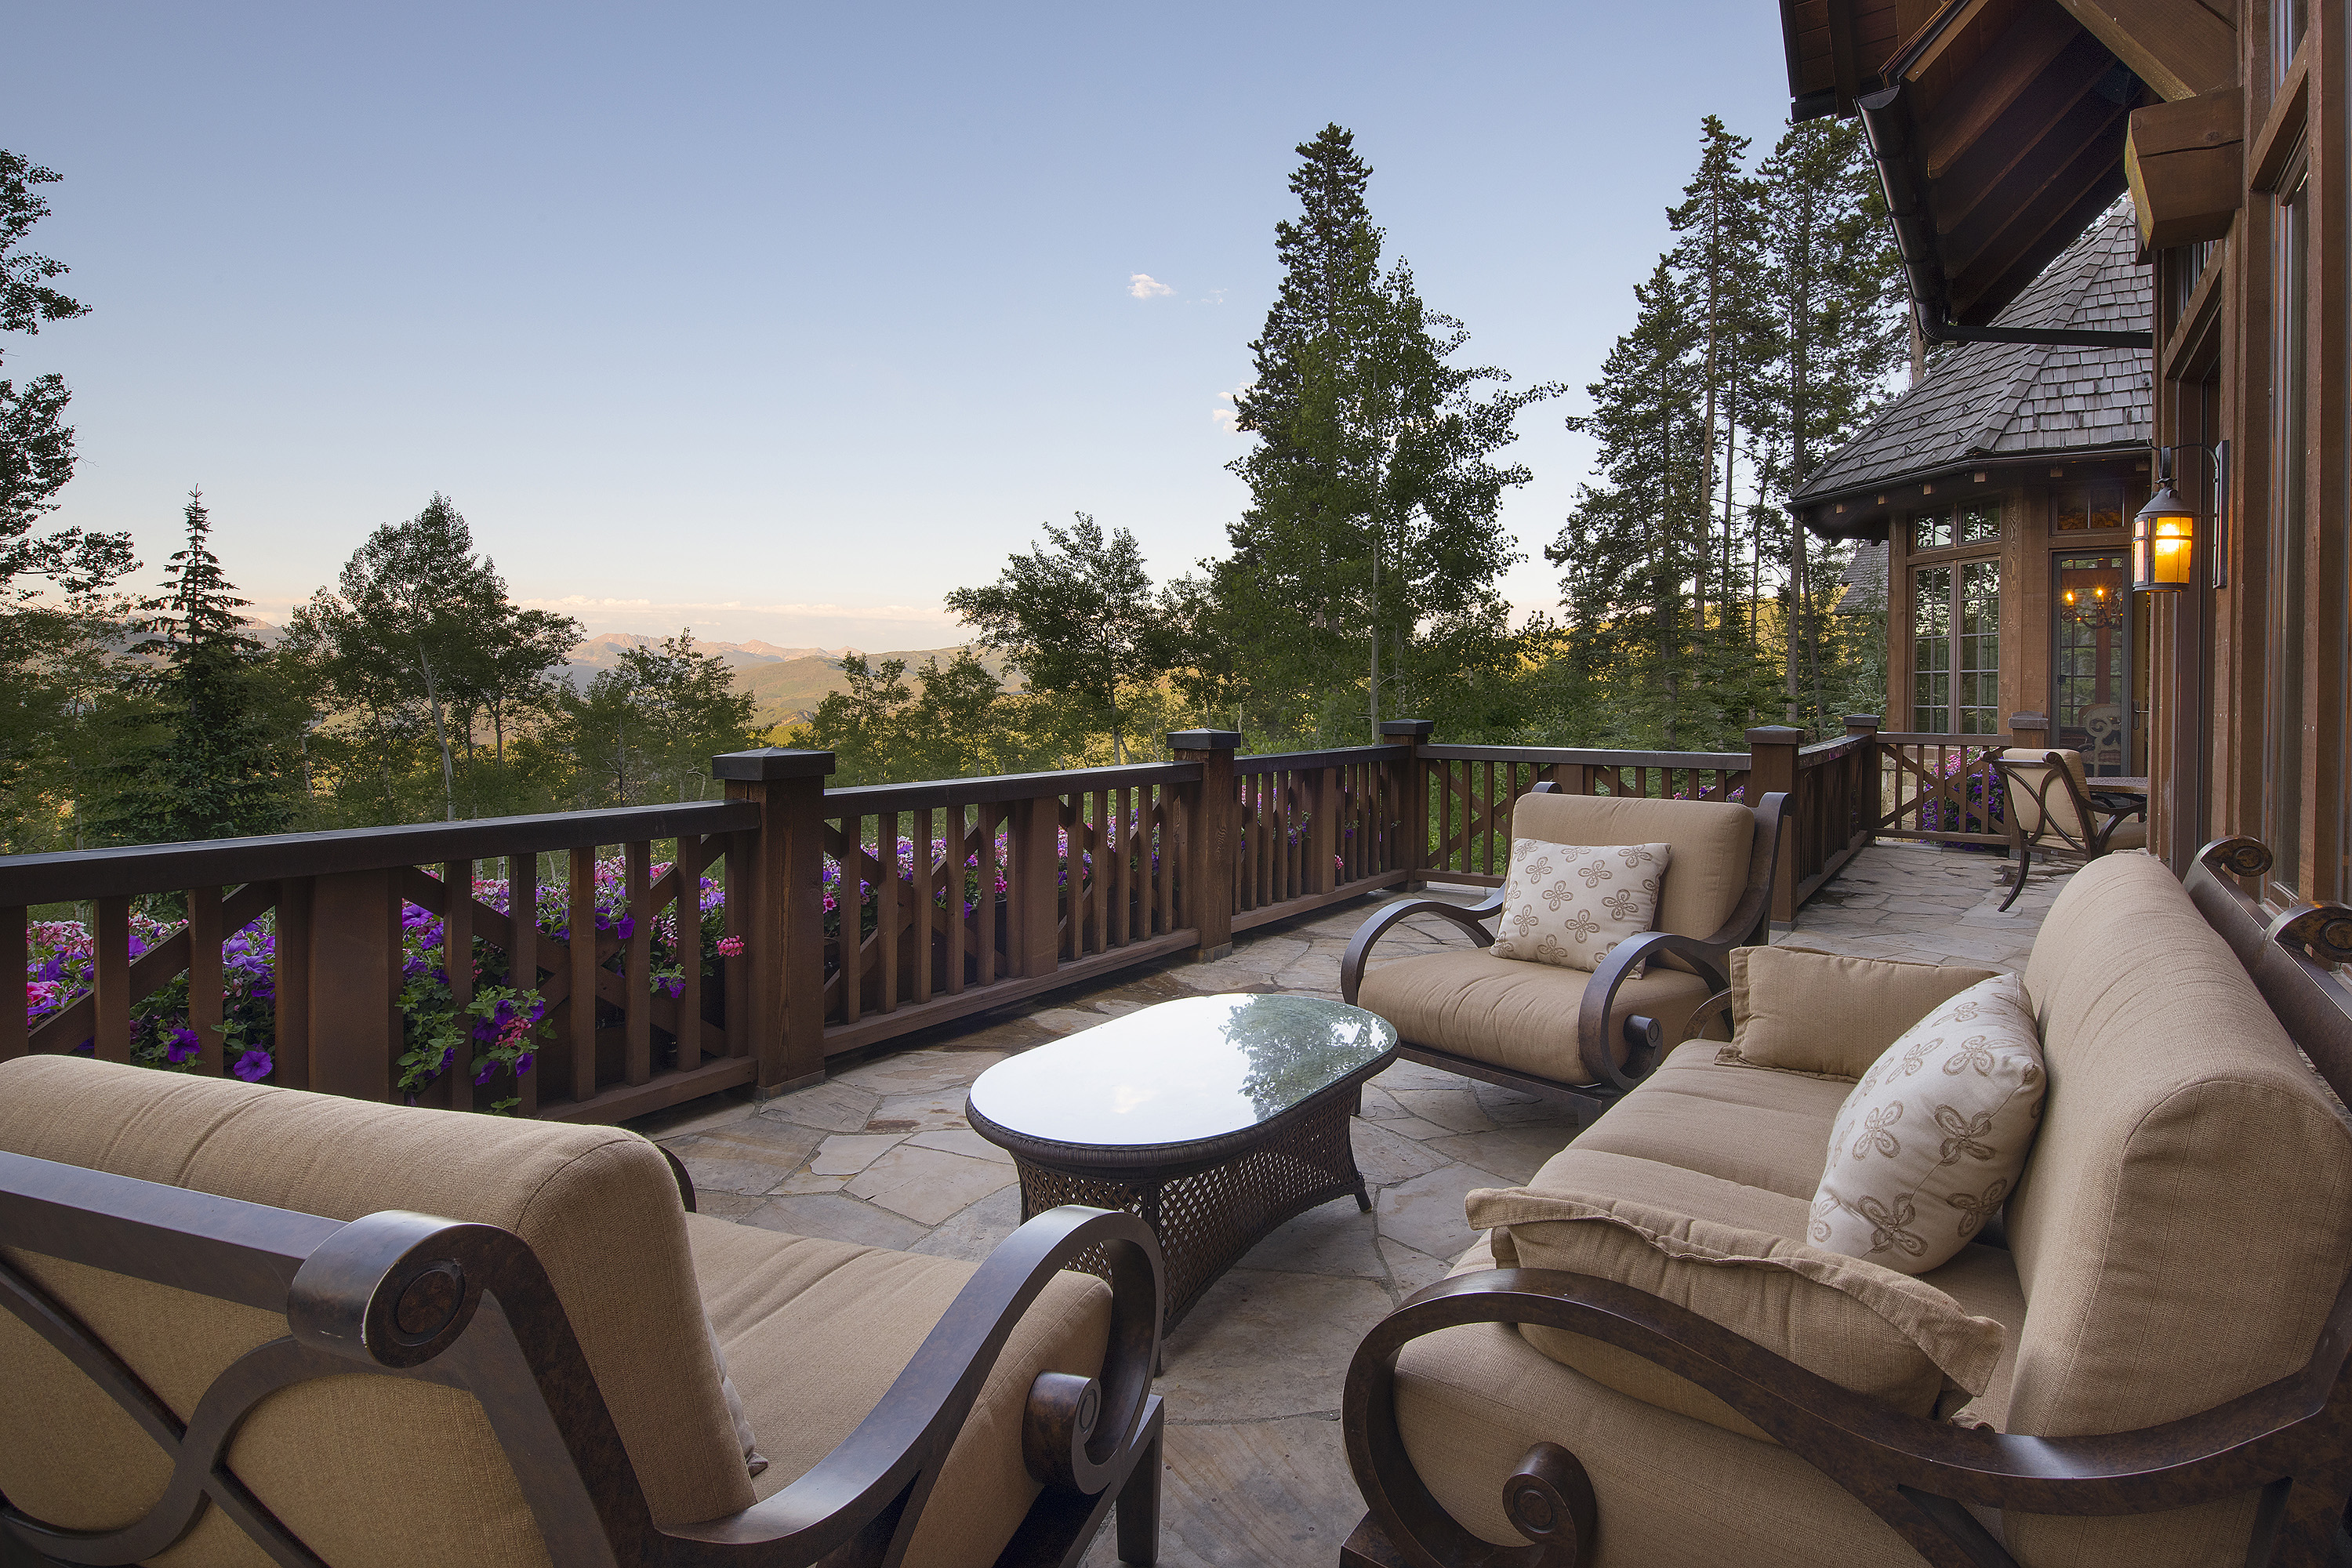 The peacefulness and tranquility of the private deck speaks itself.